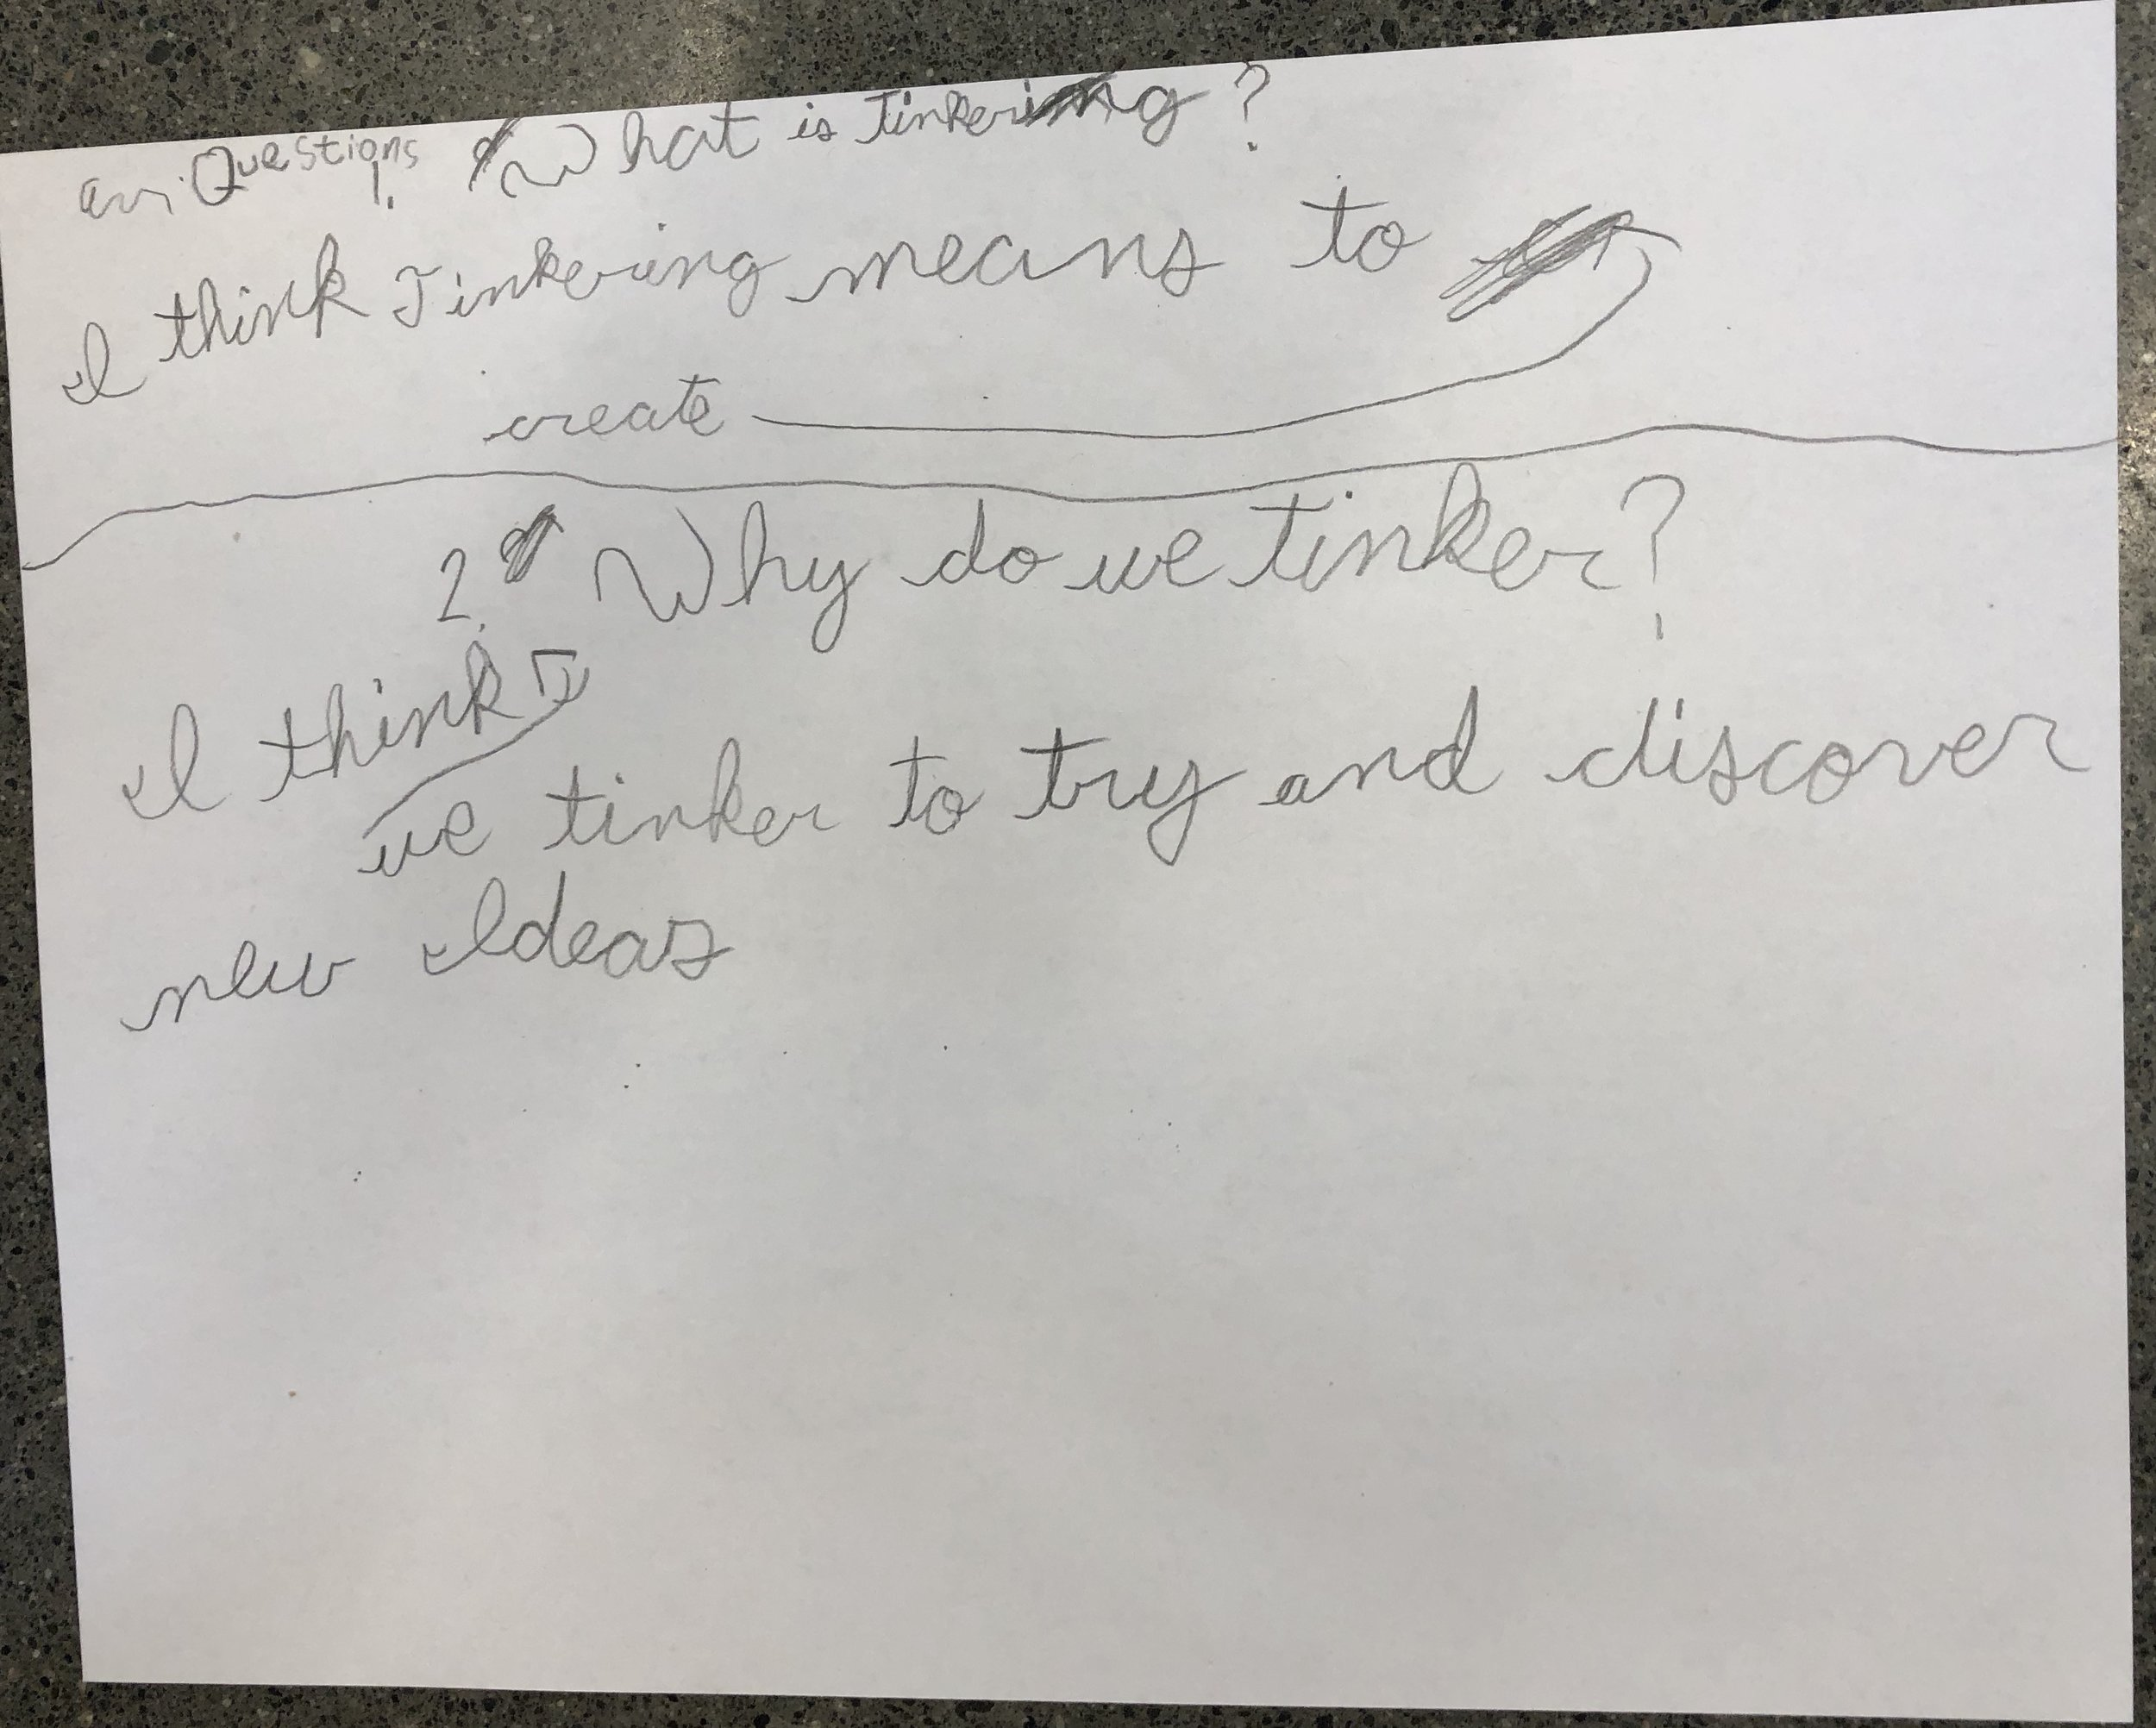 """Individual student response to """"What is tinkering?"""" and """"Why do we tinker?"""""""